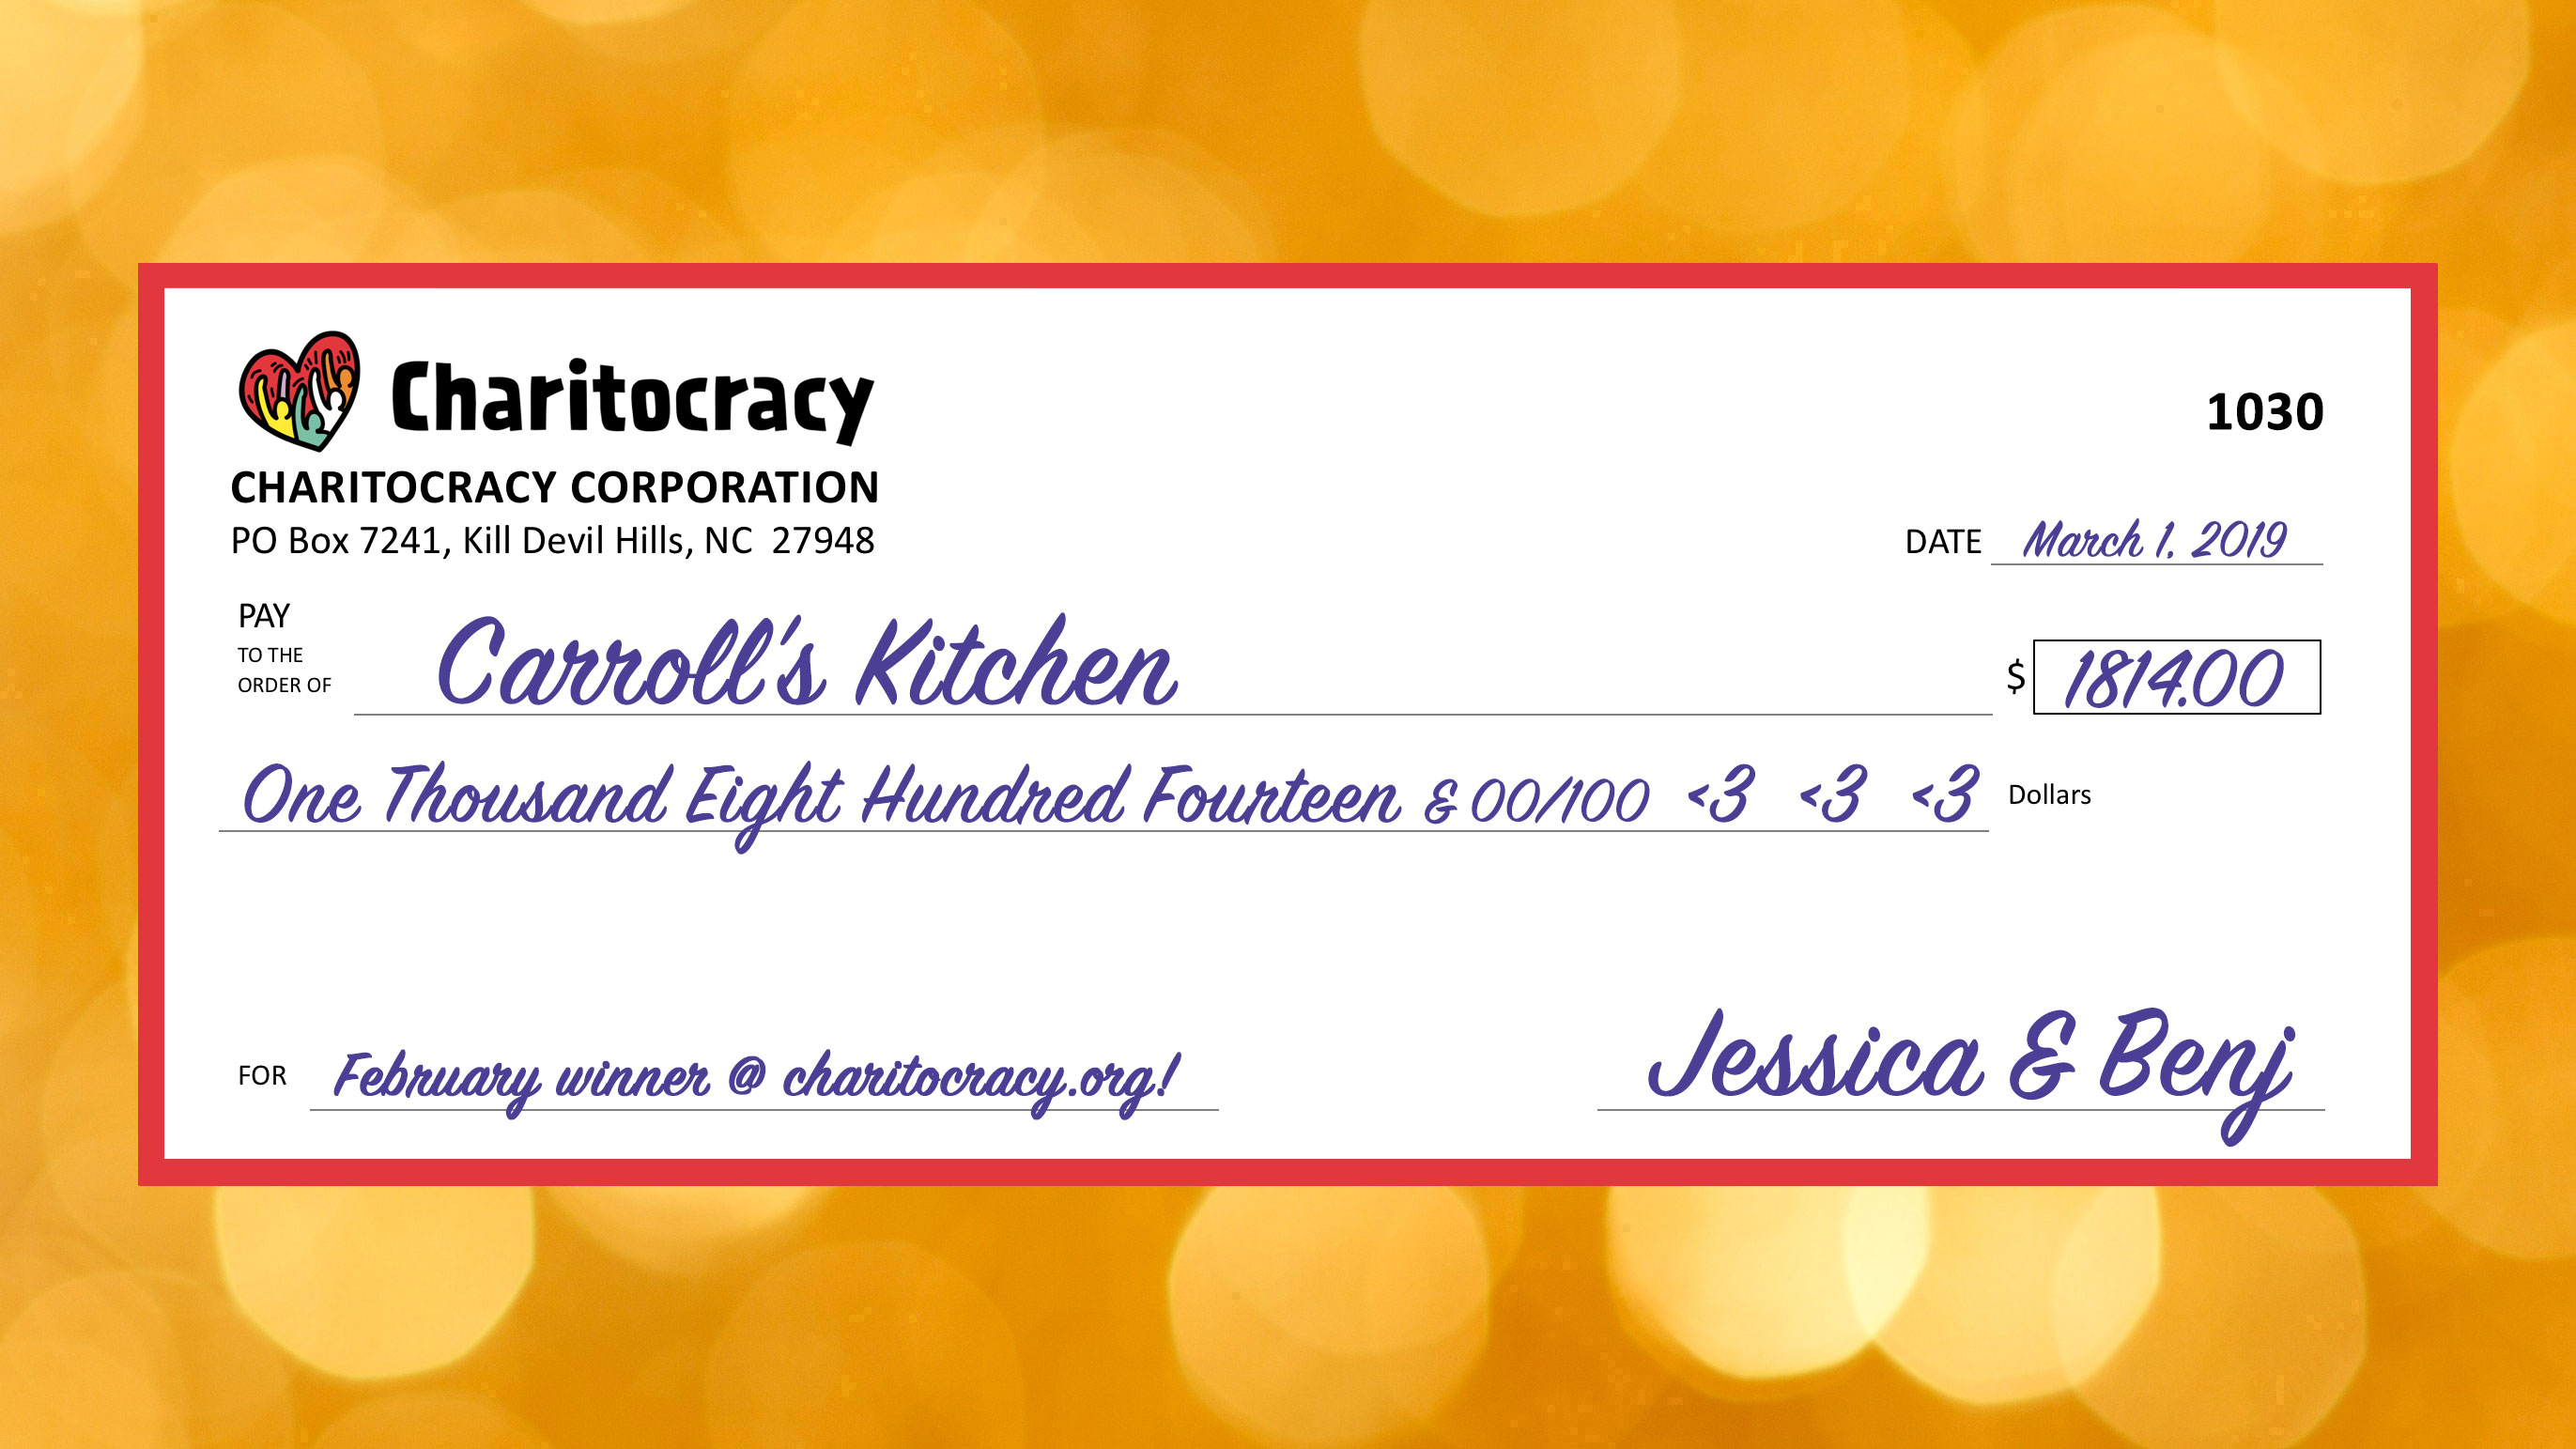 Charitocracy's 30th check to February winner Carroll's Kitchen for $1814